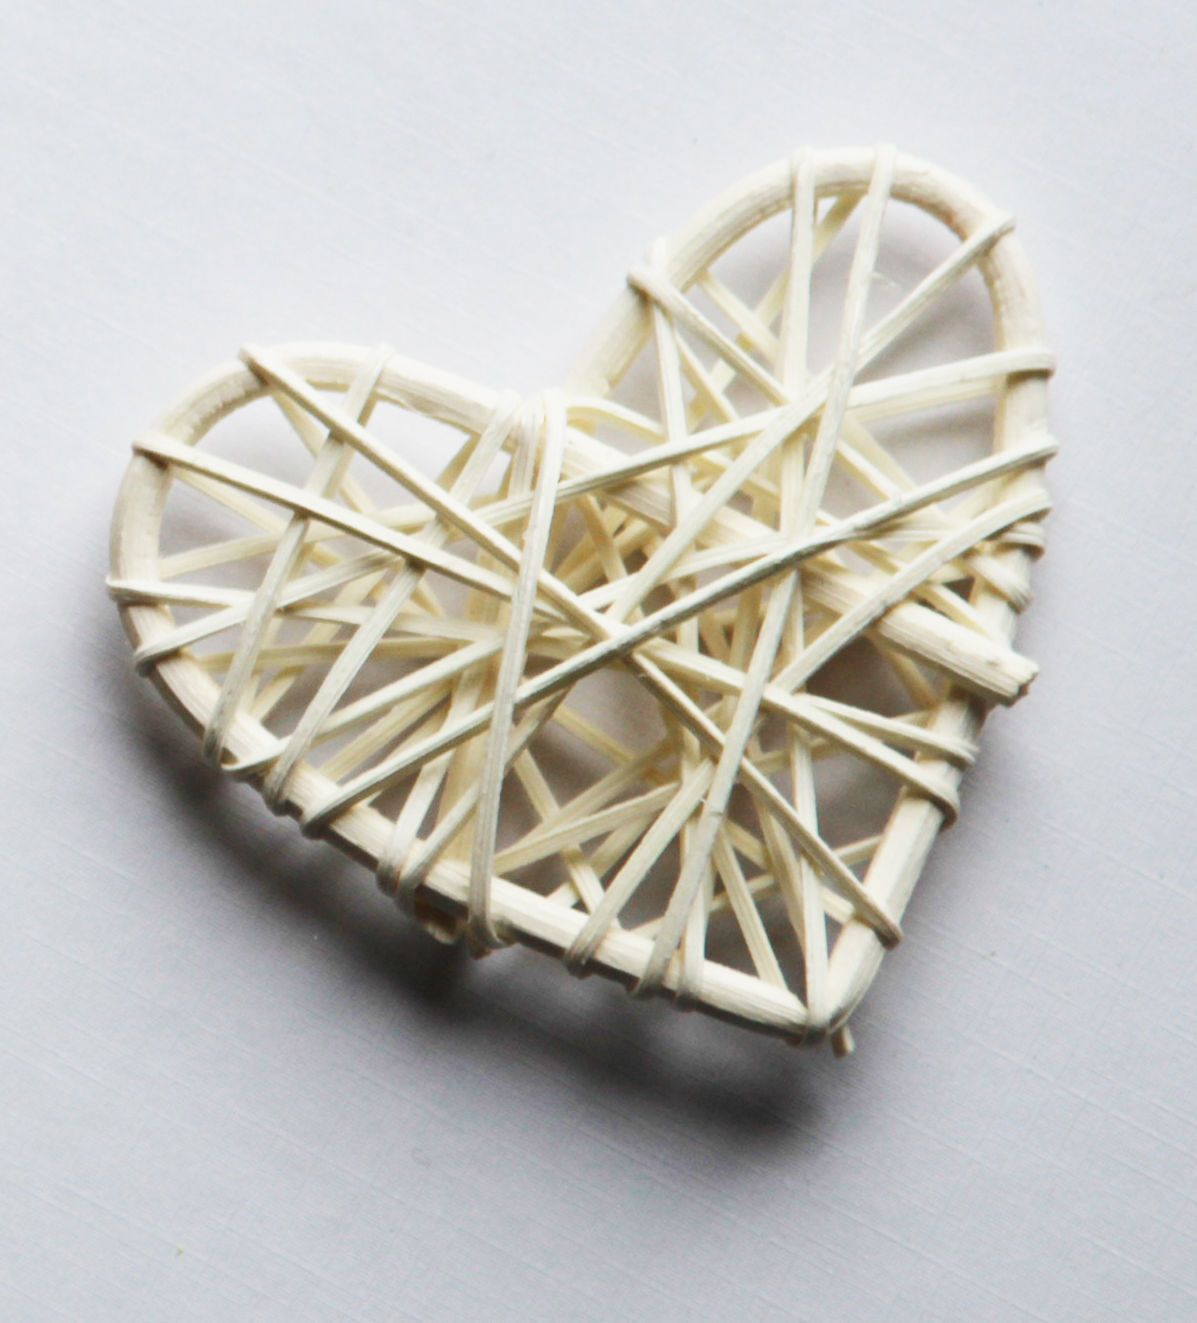 Mydecorations other home dcor ebay home garden 115aud white rattan wicker cane heart wedding event florist romantic table room decor junglespirit Image collections